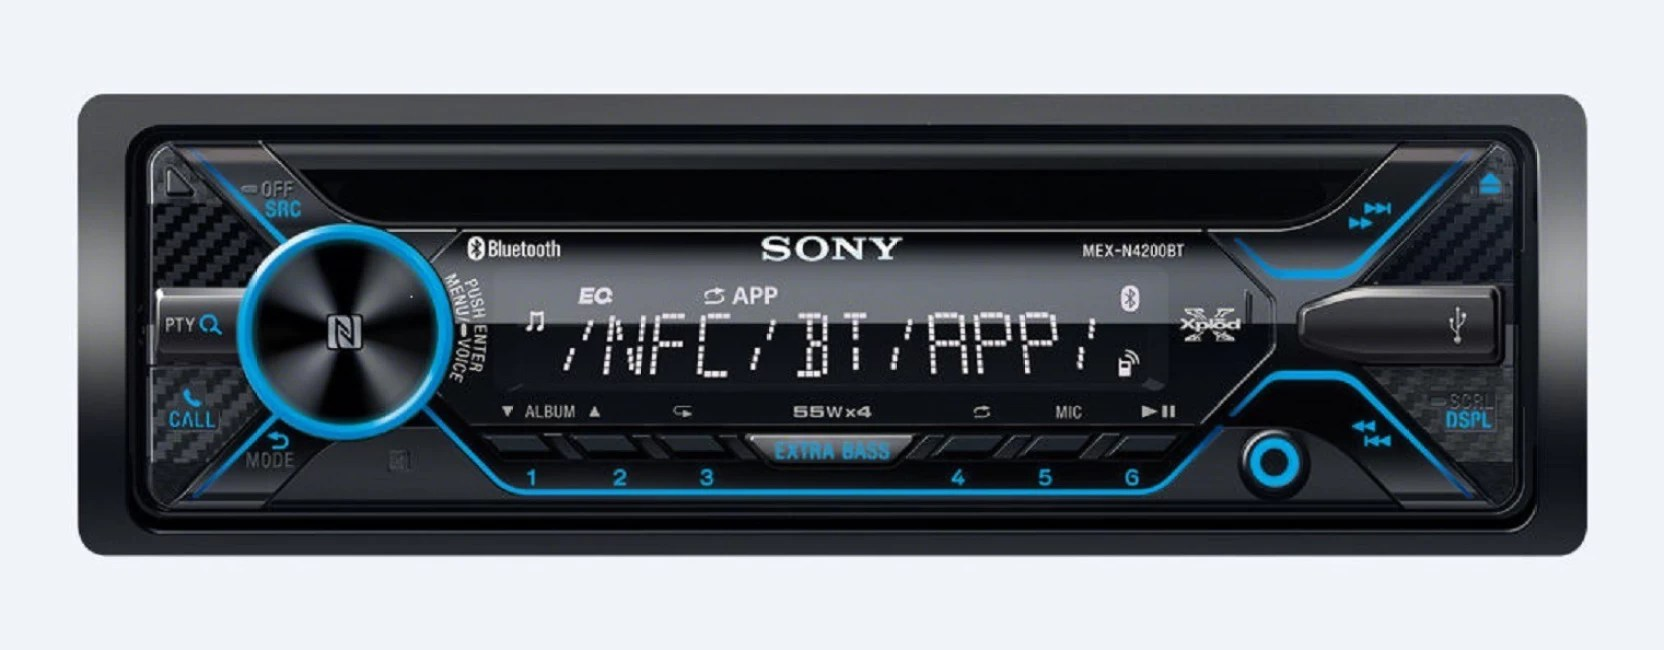 sony mex n4200bt car stereo price in india buy sony mex n4200bt add to cart [ 1664 x 650 Pixel ]